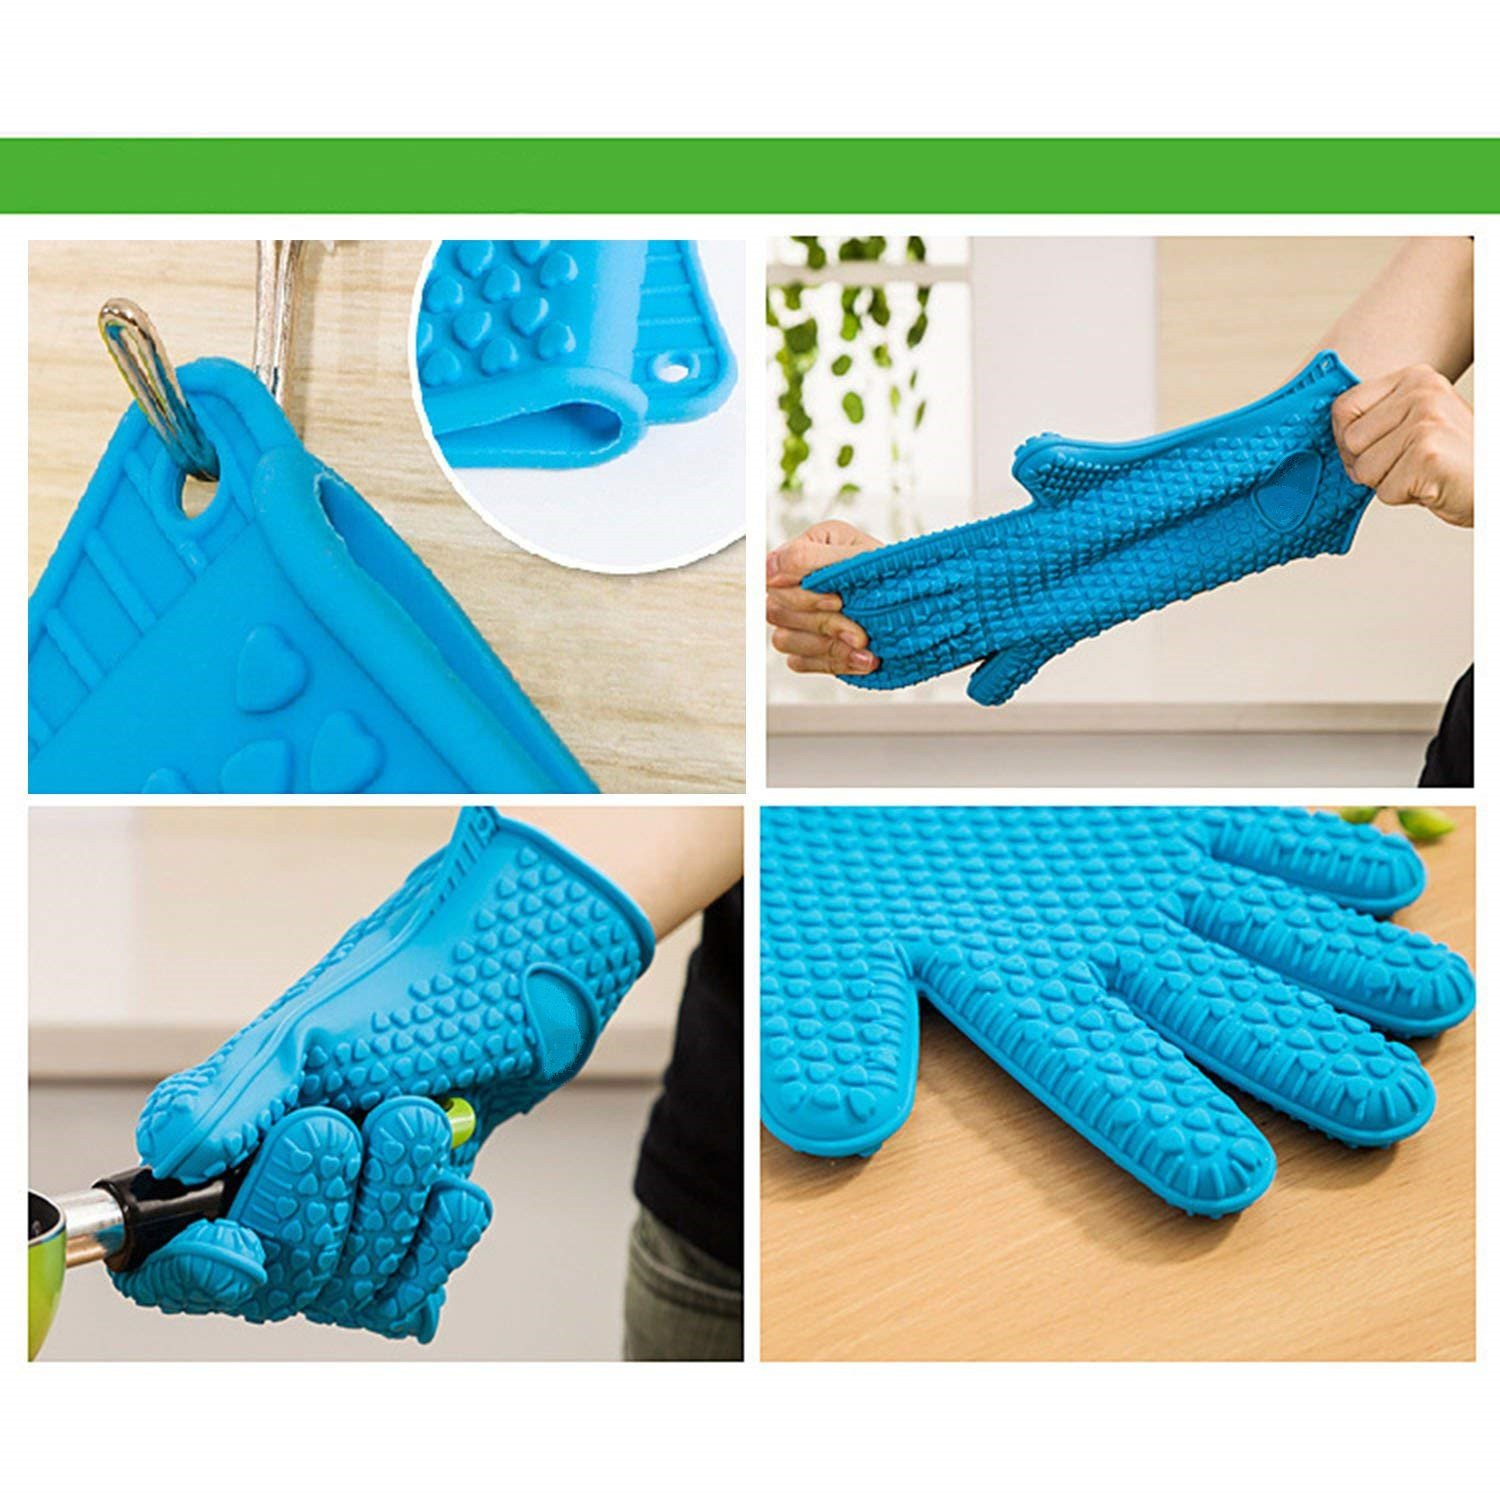 Silicone BBQ Gloves - Oceom Best Heat Resistant Non-slip Oven Mitts For Cooking, Baking, BBQ, Oven, Microwave, Frying, Freezer, Kitchen 1PC (Blue) by Oceom (Image #3)